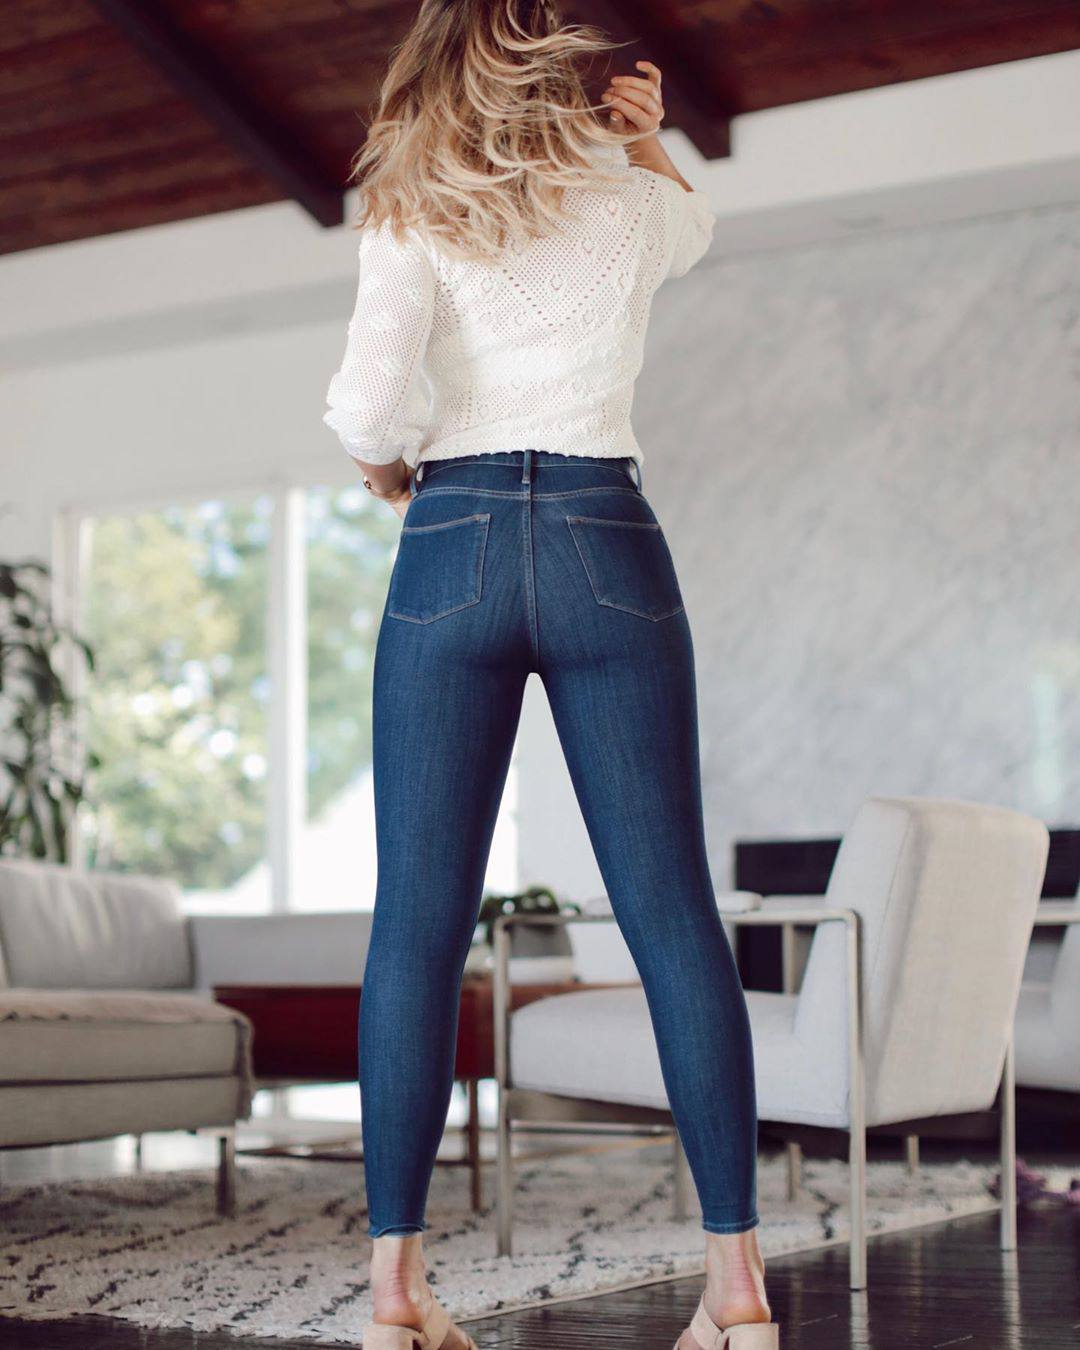 Katrina Bowden Sexy Ass In Jeans